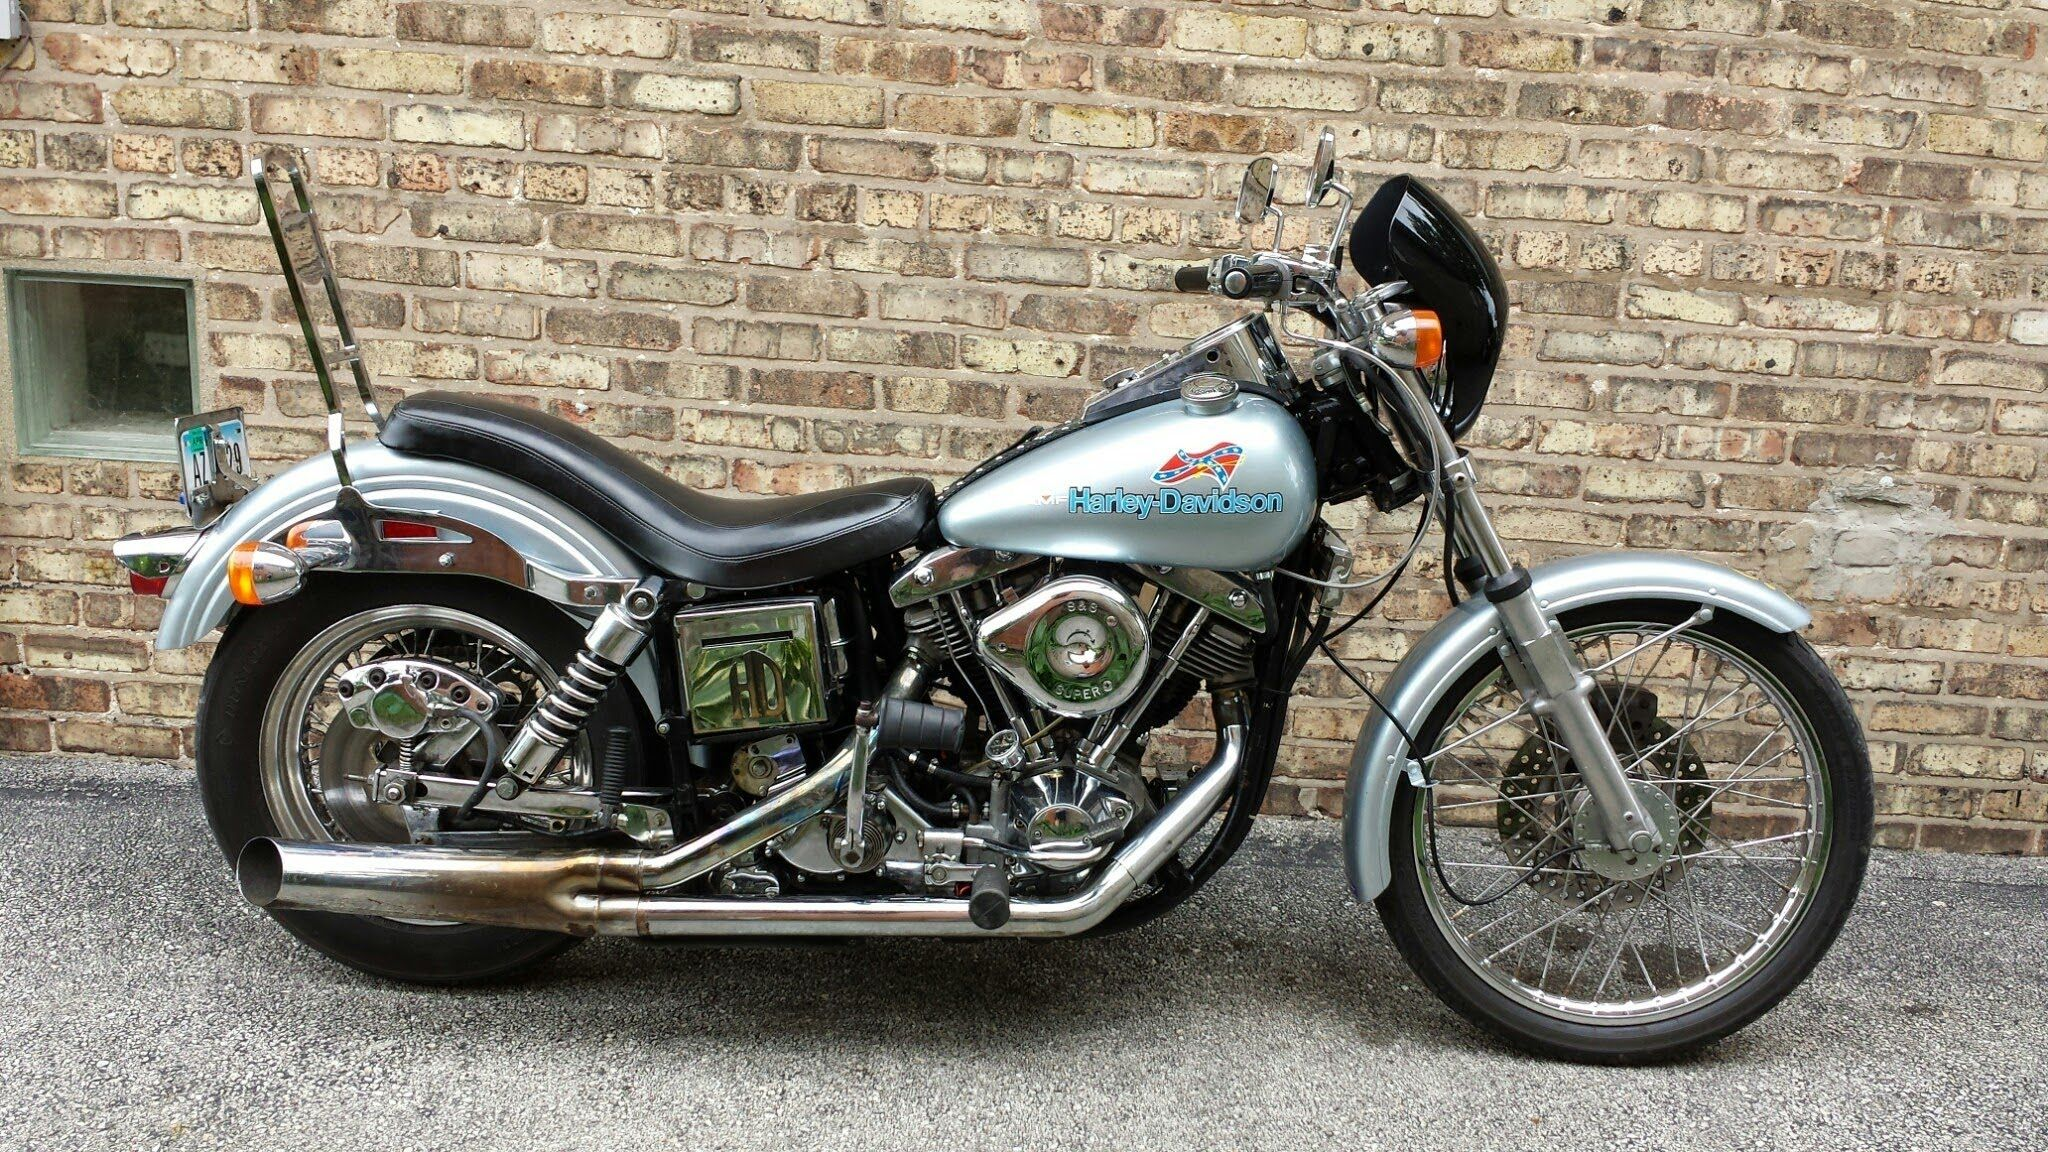 1977 Harley Davidson FXE-1200 Confederate Edition for sale